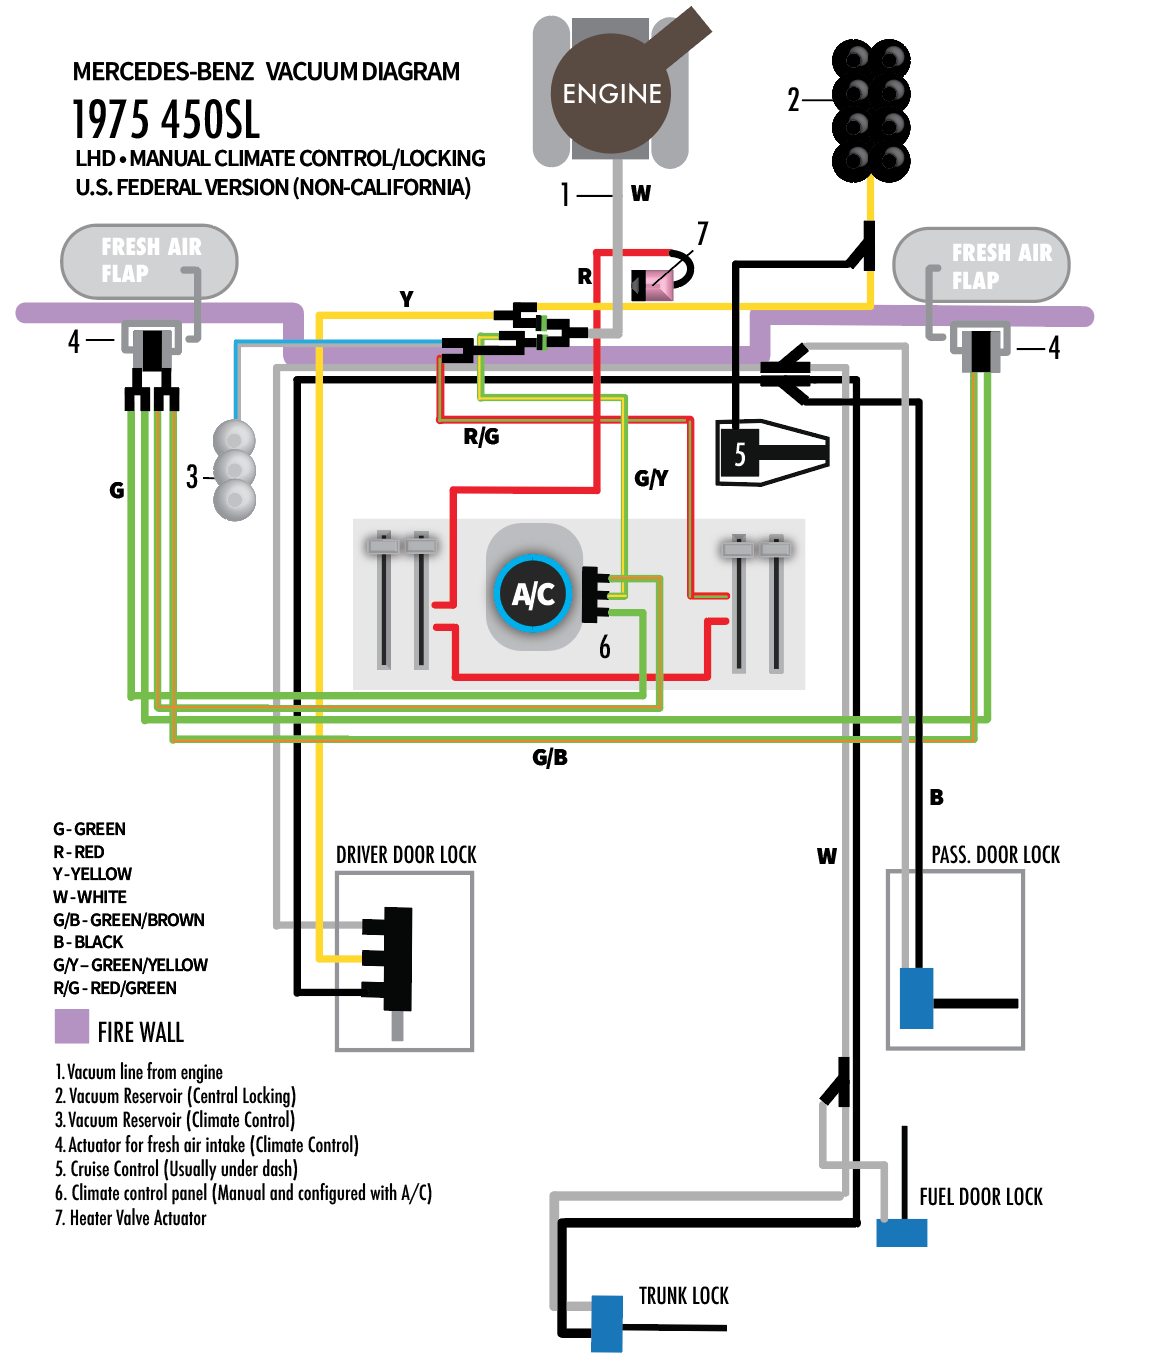 mercedes sec vacuum diagram all kind of wiring diagrams